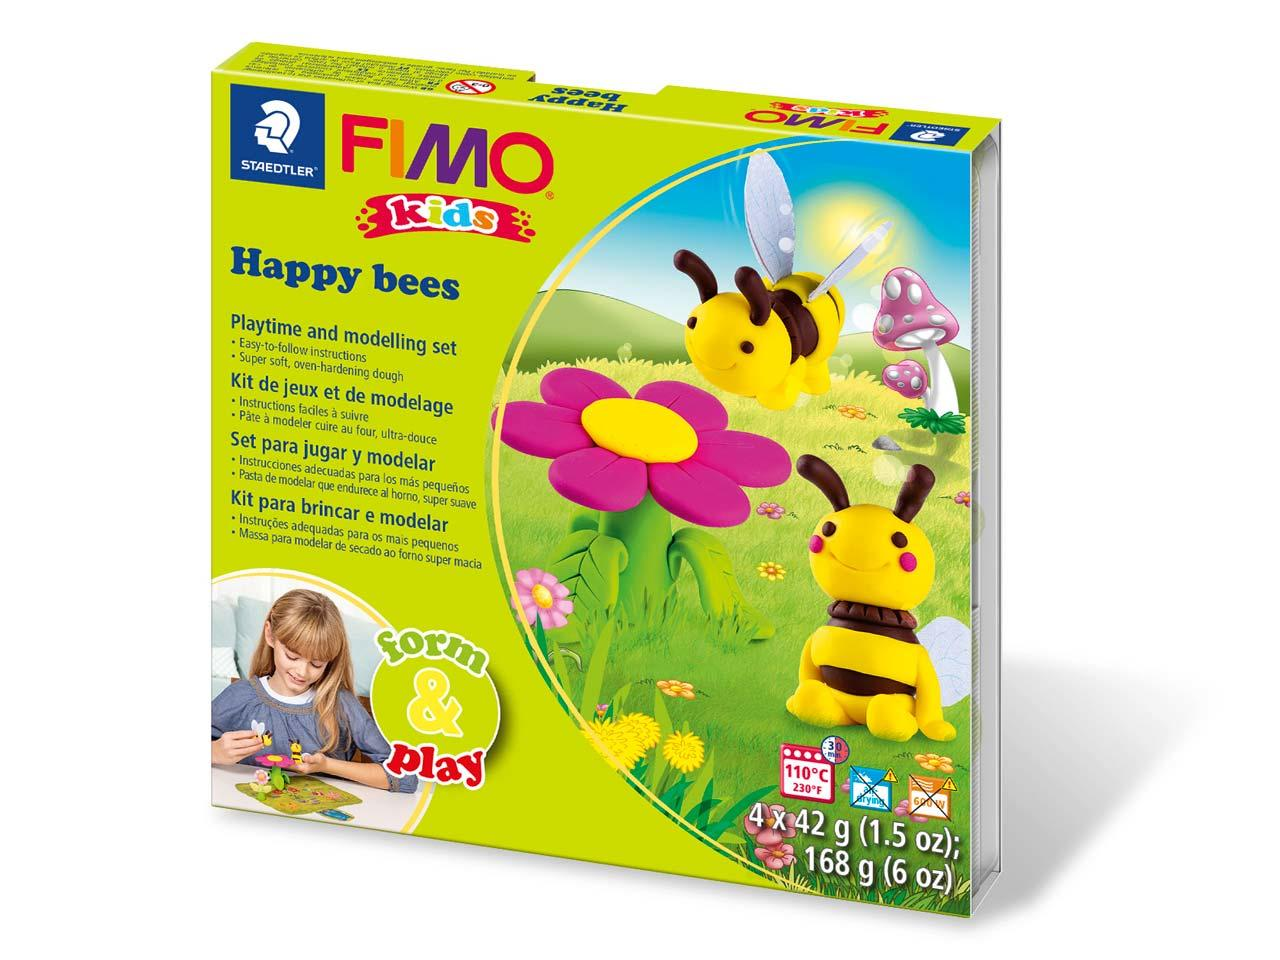 Box for FIMO Happy Bees modelling kit